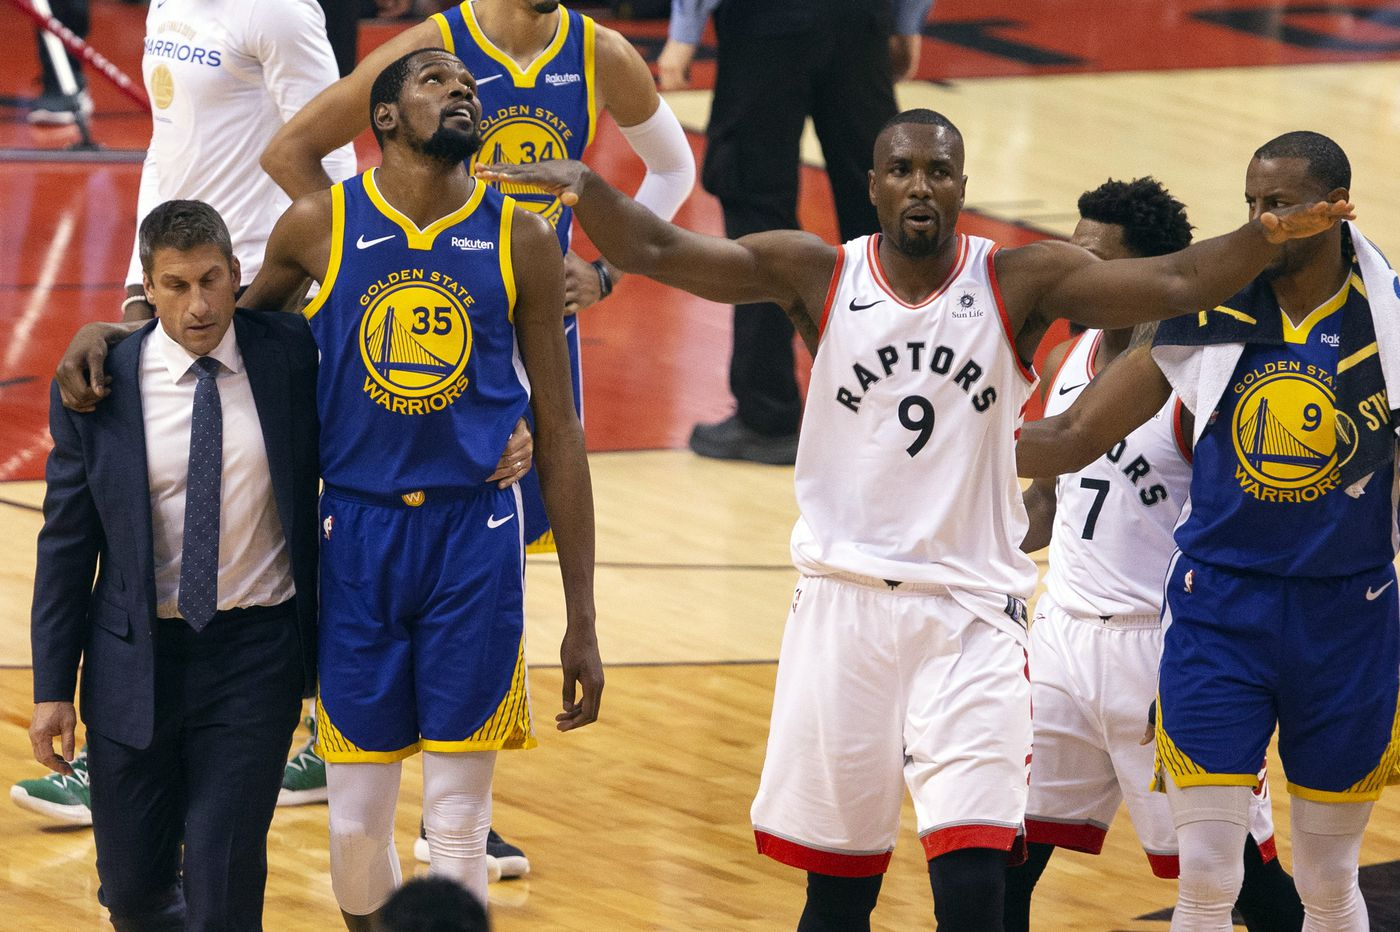 Let the Kevin Durant incident be a lesson: Injuries aren't character flaws | Mike Sielski